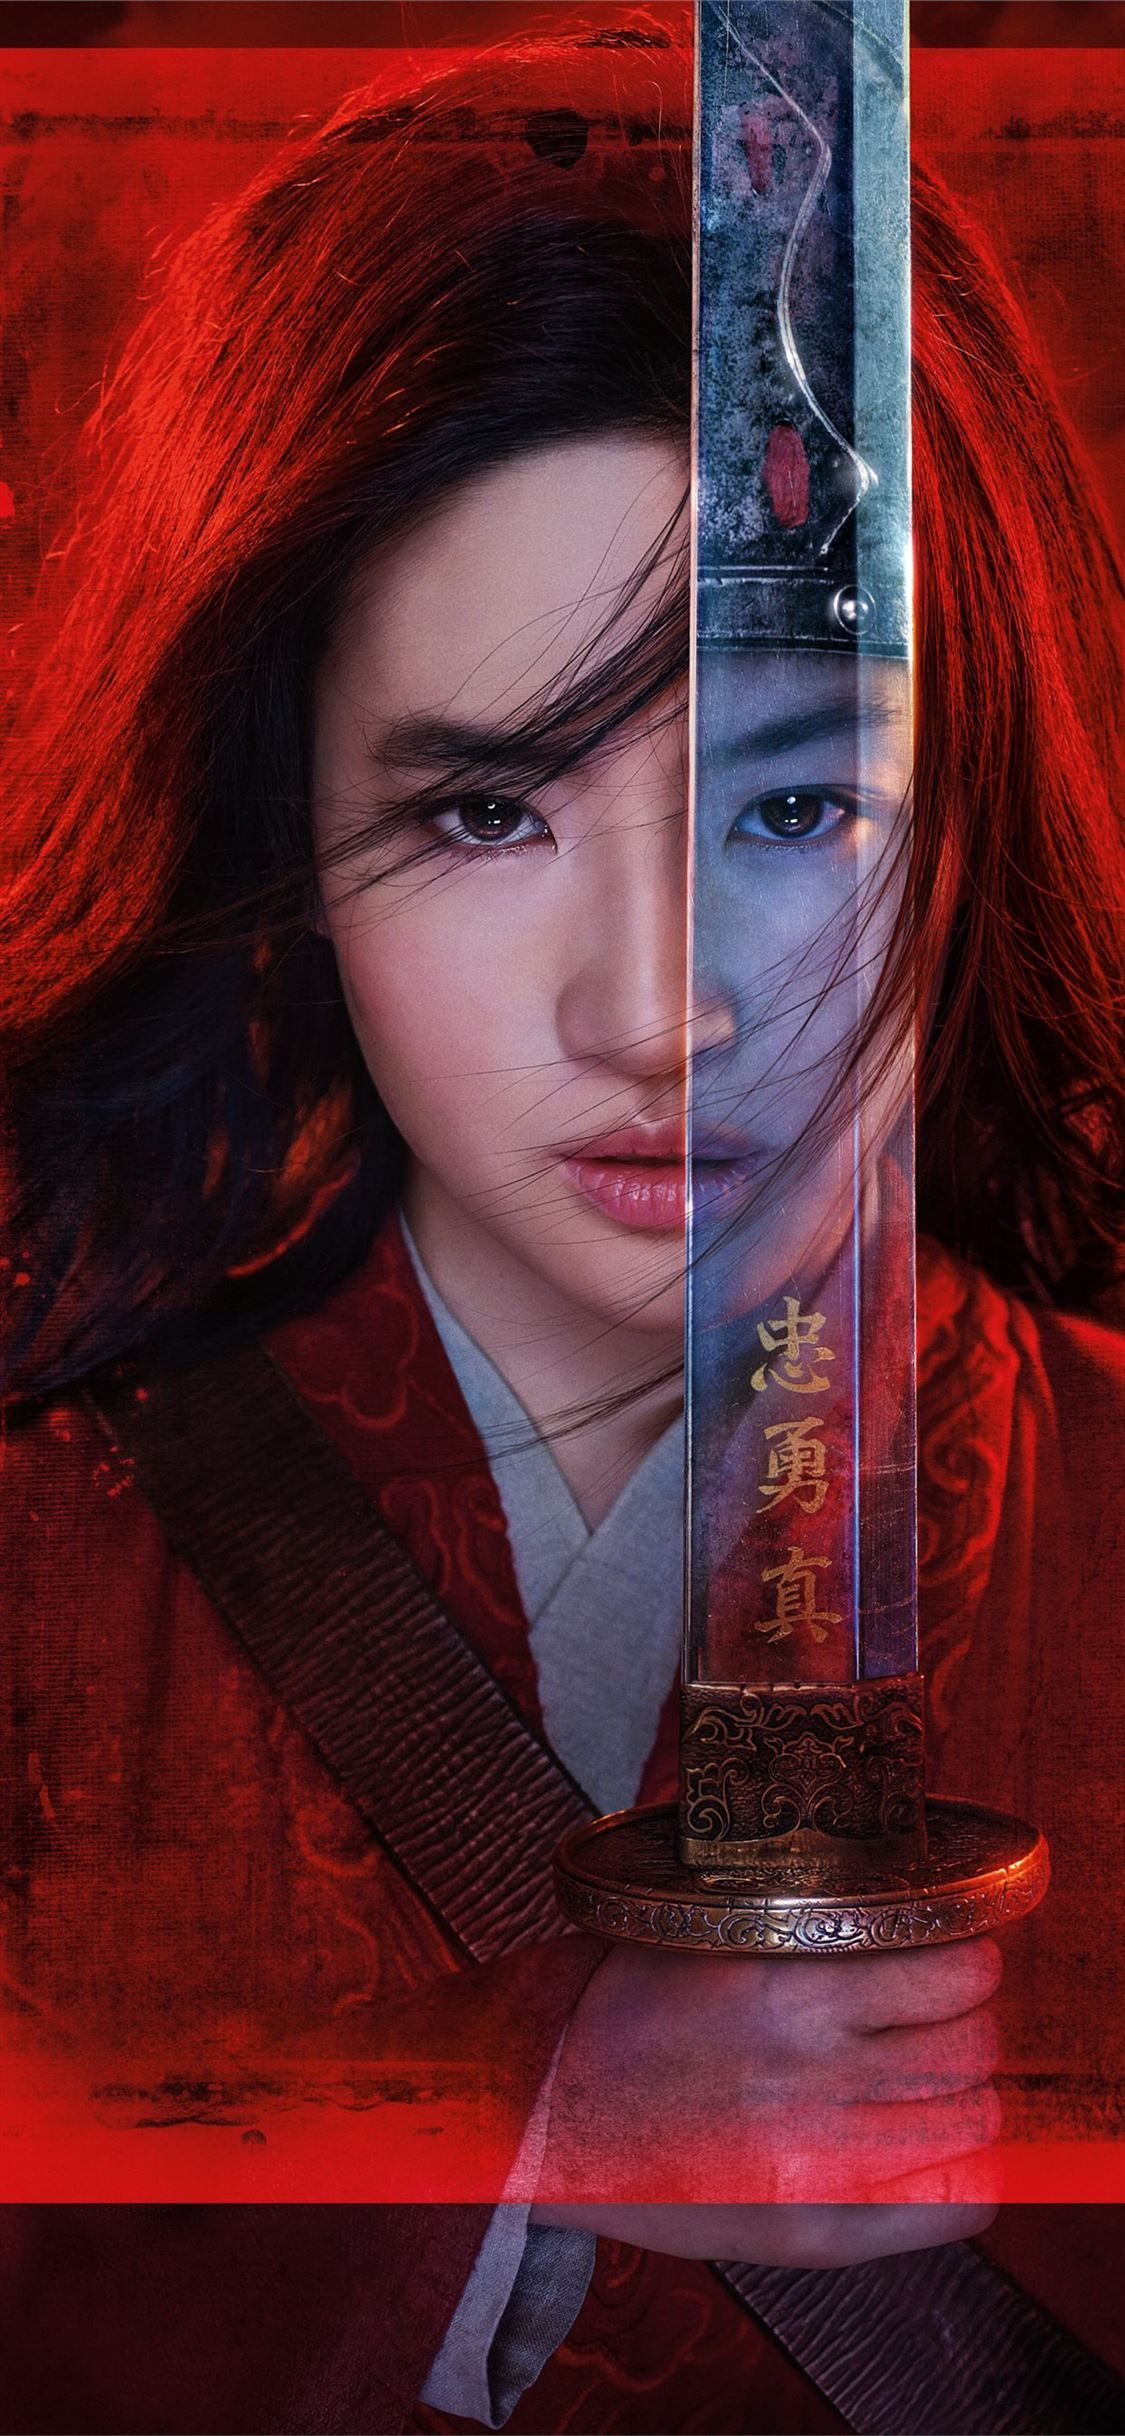 Mulan 2020 8k Mulan 2020movies Movies Liuyifei Disney 4k 5k Iphonexwallpaper In 2020 Mulan Movie Disney Princess Pictures Mulan Disney